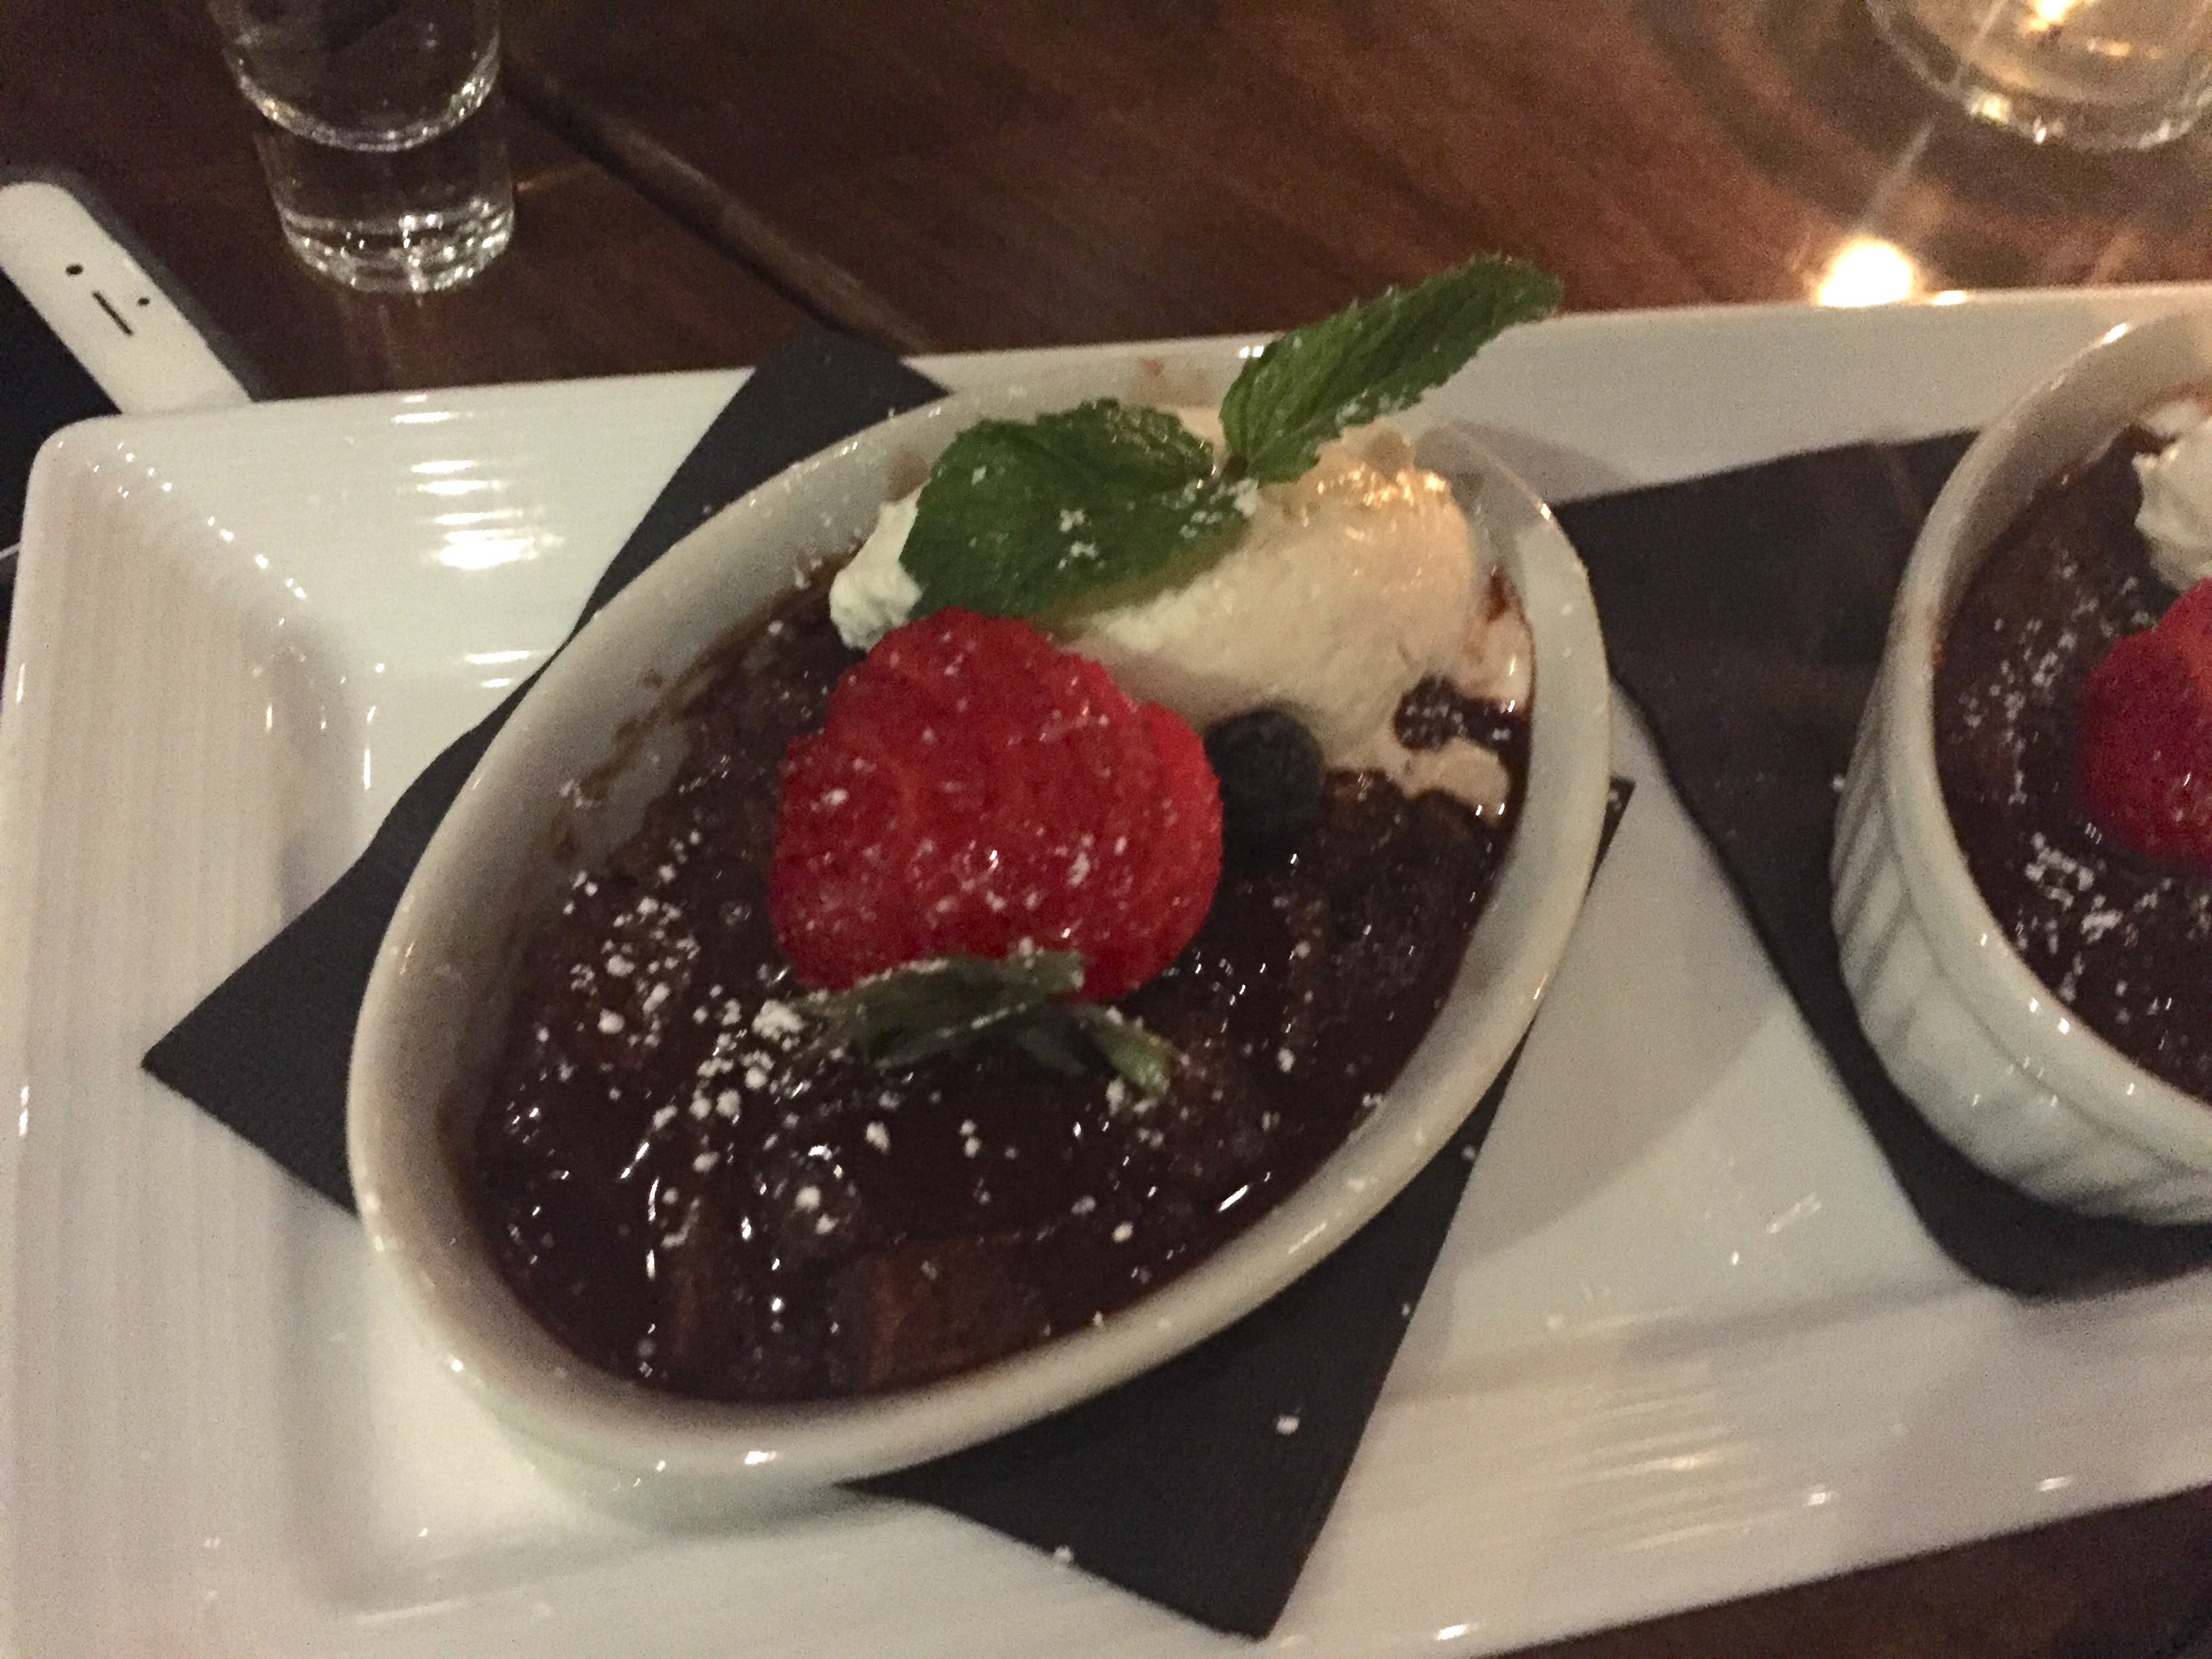 Put a fork in me, I'm done - chocolate bread pudding